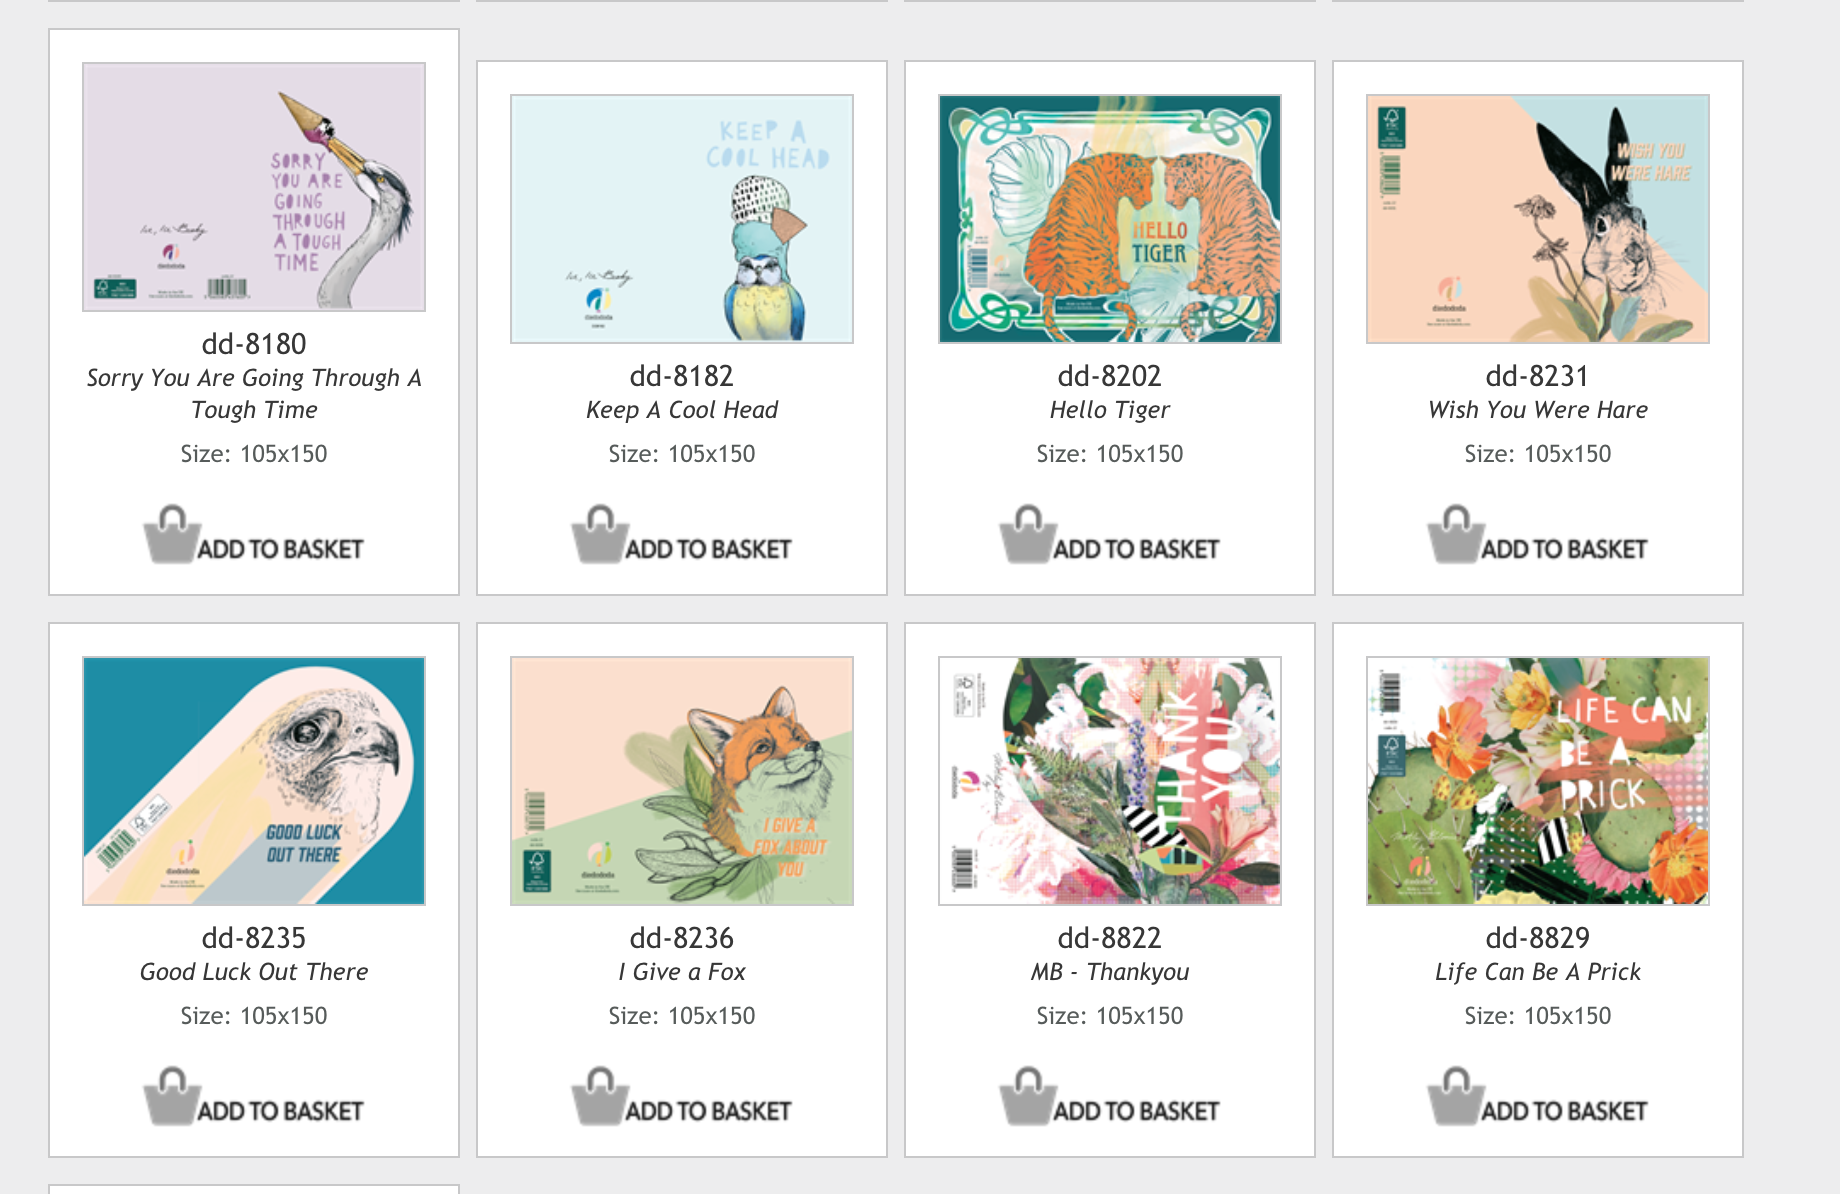 Above: A snapshot of some of the designs available on the Simplicity Direct site.